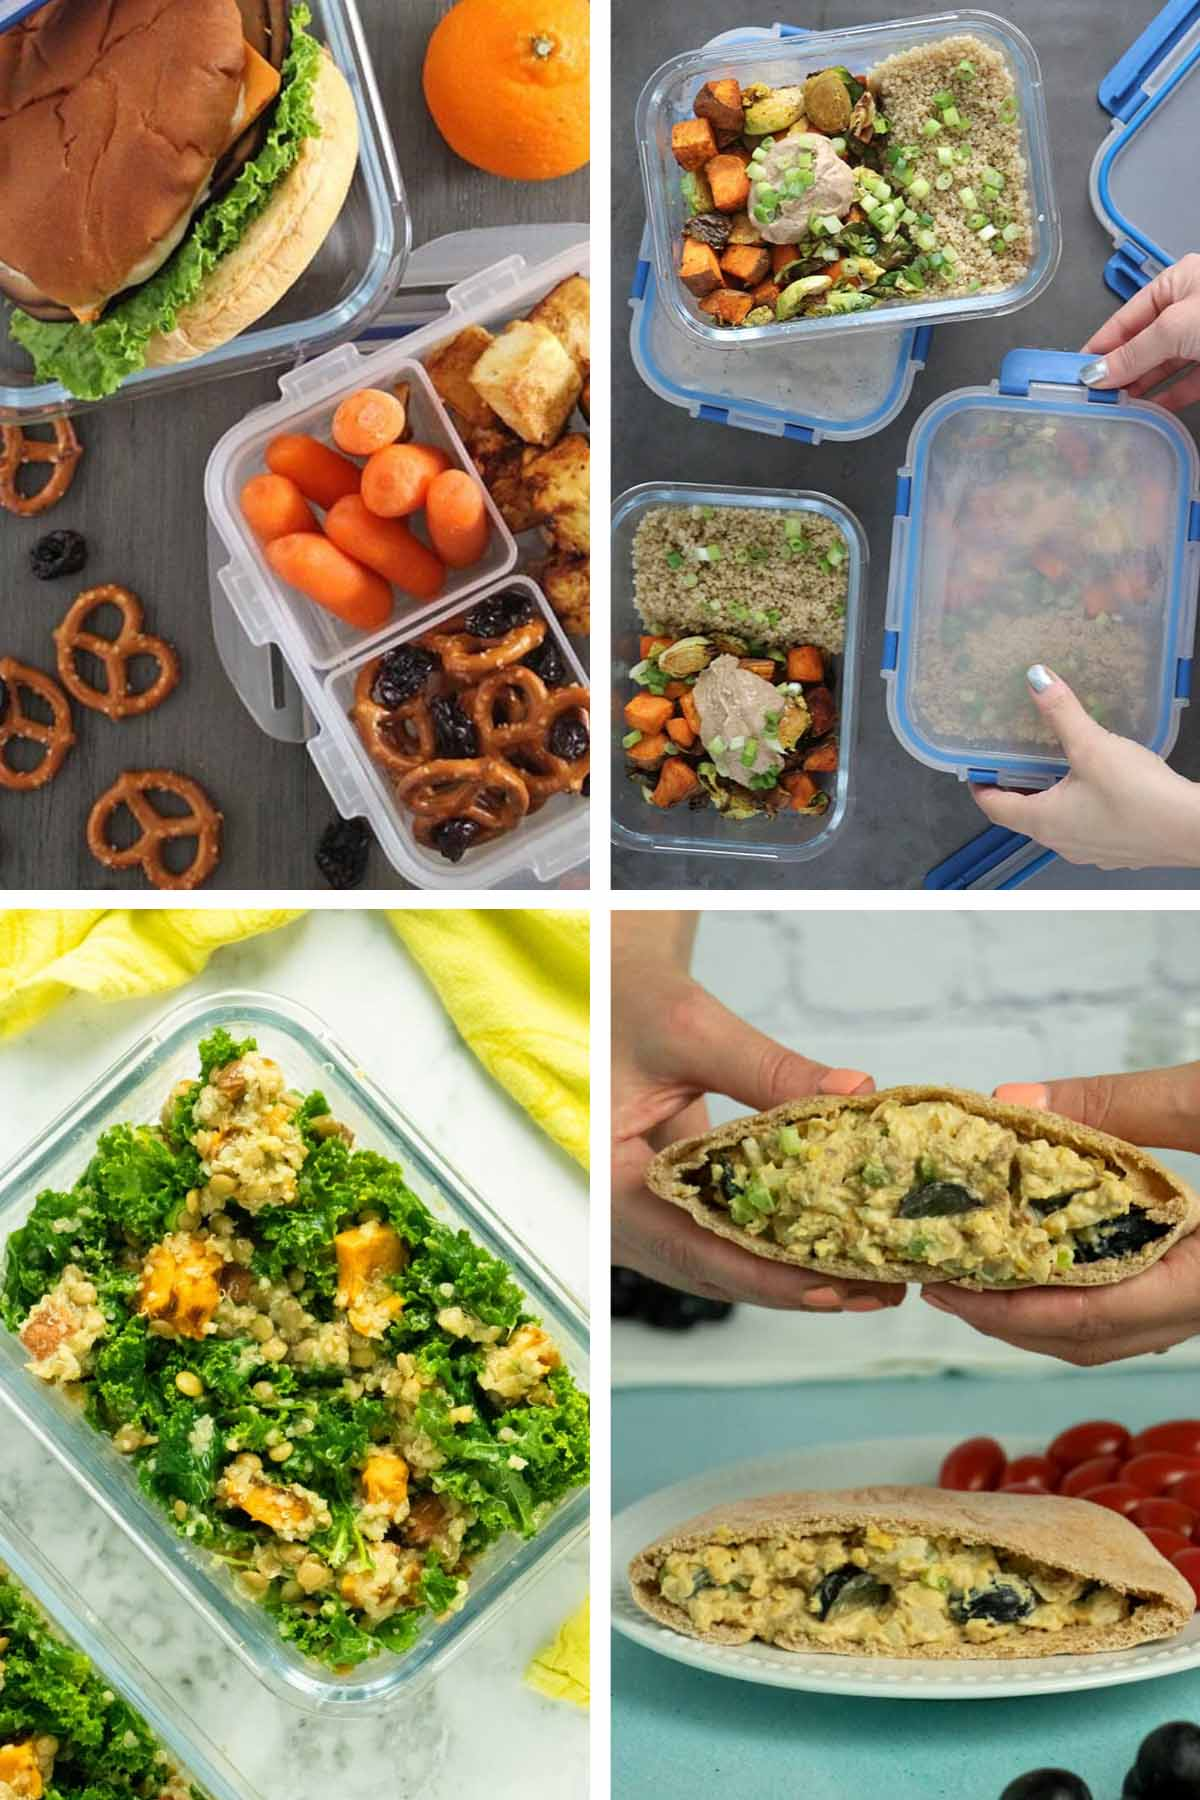 image collage of vegan packed lunches: sandwich, quinoa salad, kale salad, chickpea sandwich